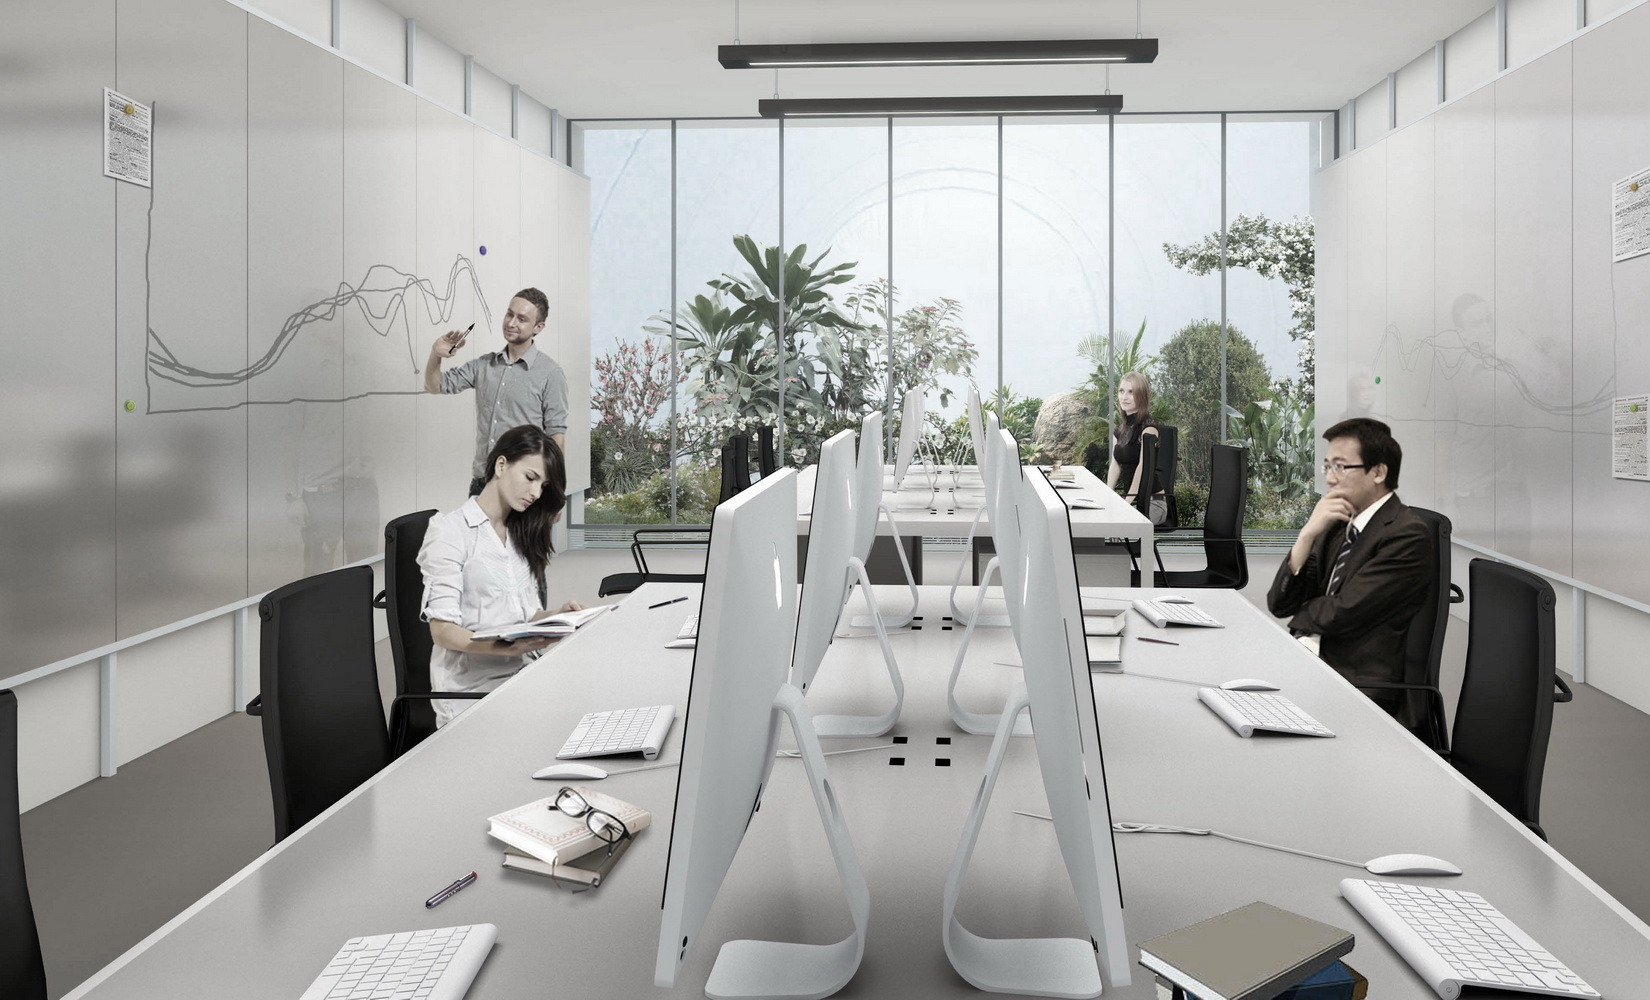 architecture office interior. Bubble Building,Office Interior View. Image Courtesy Of 3GATTI Architecture Office